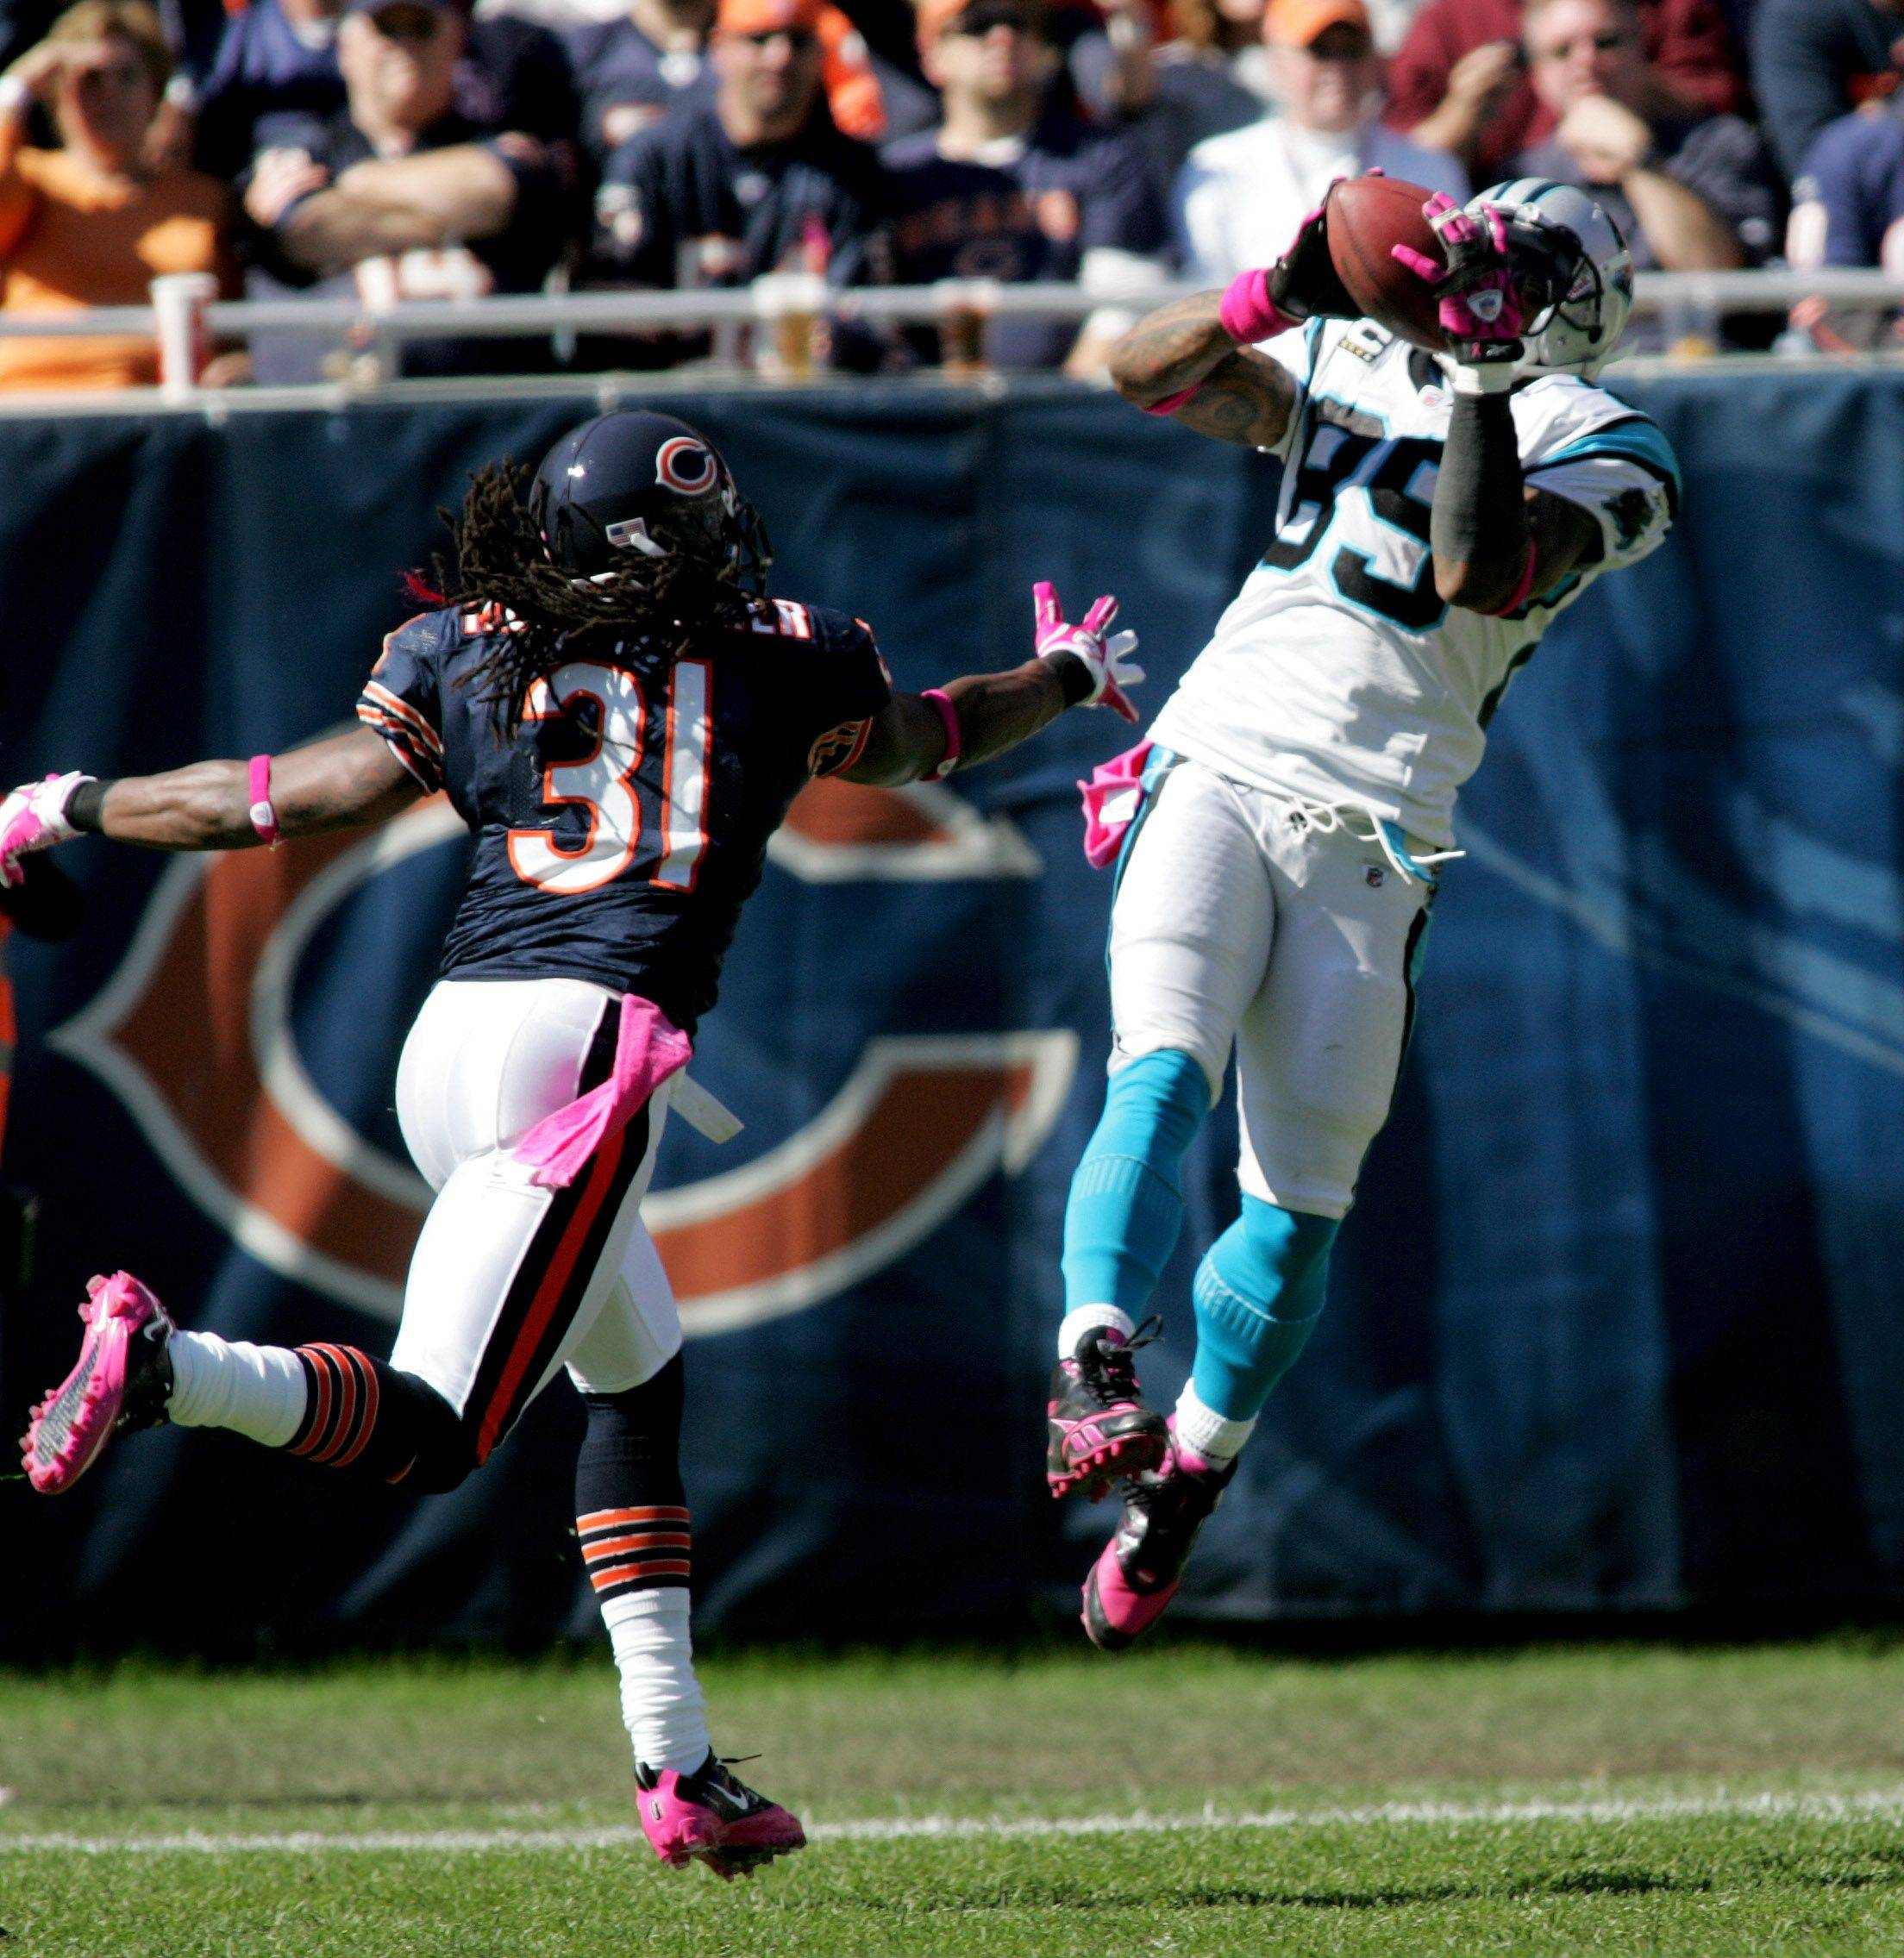 Brandon Meriweather of the Chicago Bears, left, defends as Steve Smith of the Carolina Panthers makes a catch at Soldier Field on Sunday.